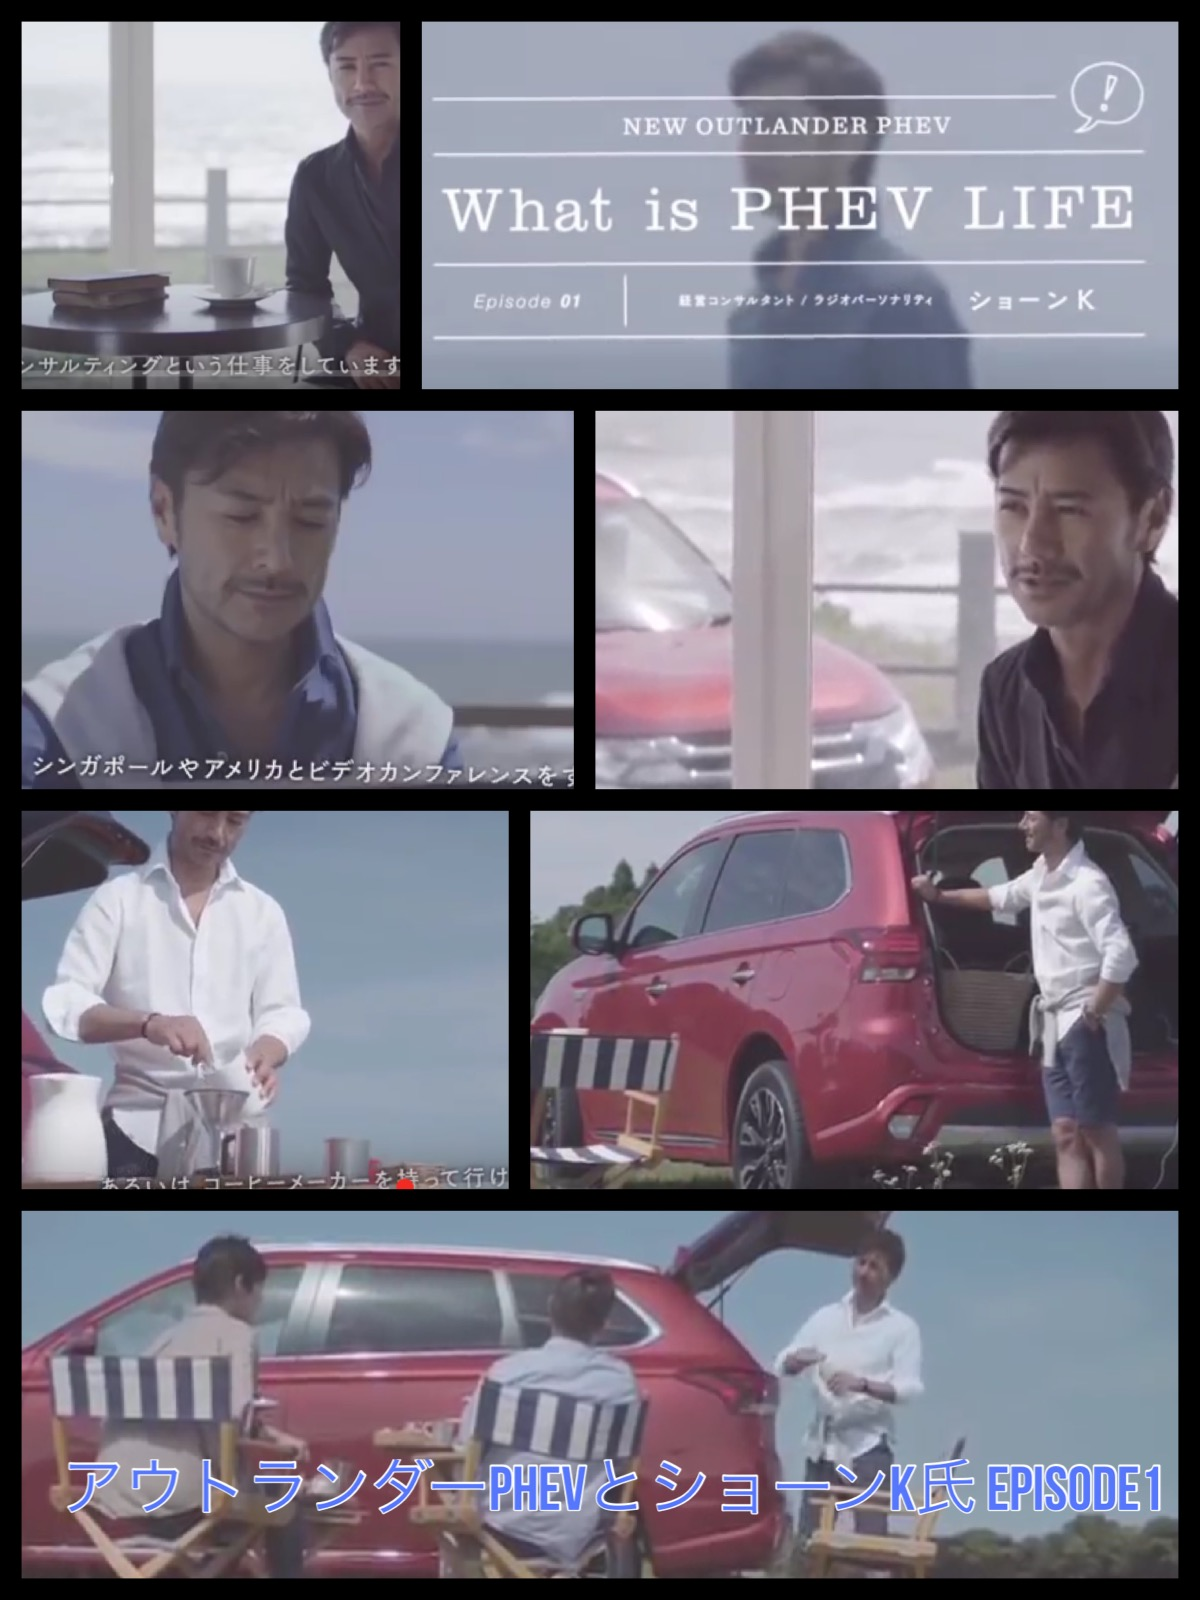 「WHAT IS PHEV LIFE?Episode 1 ショーンK氏編」